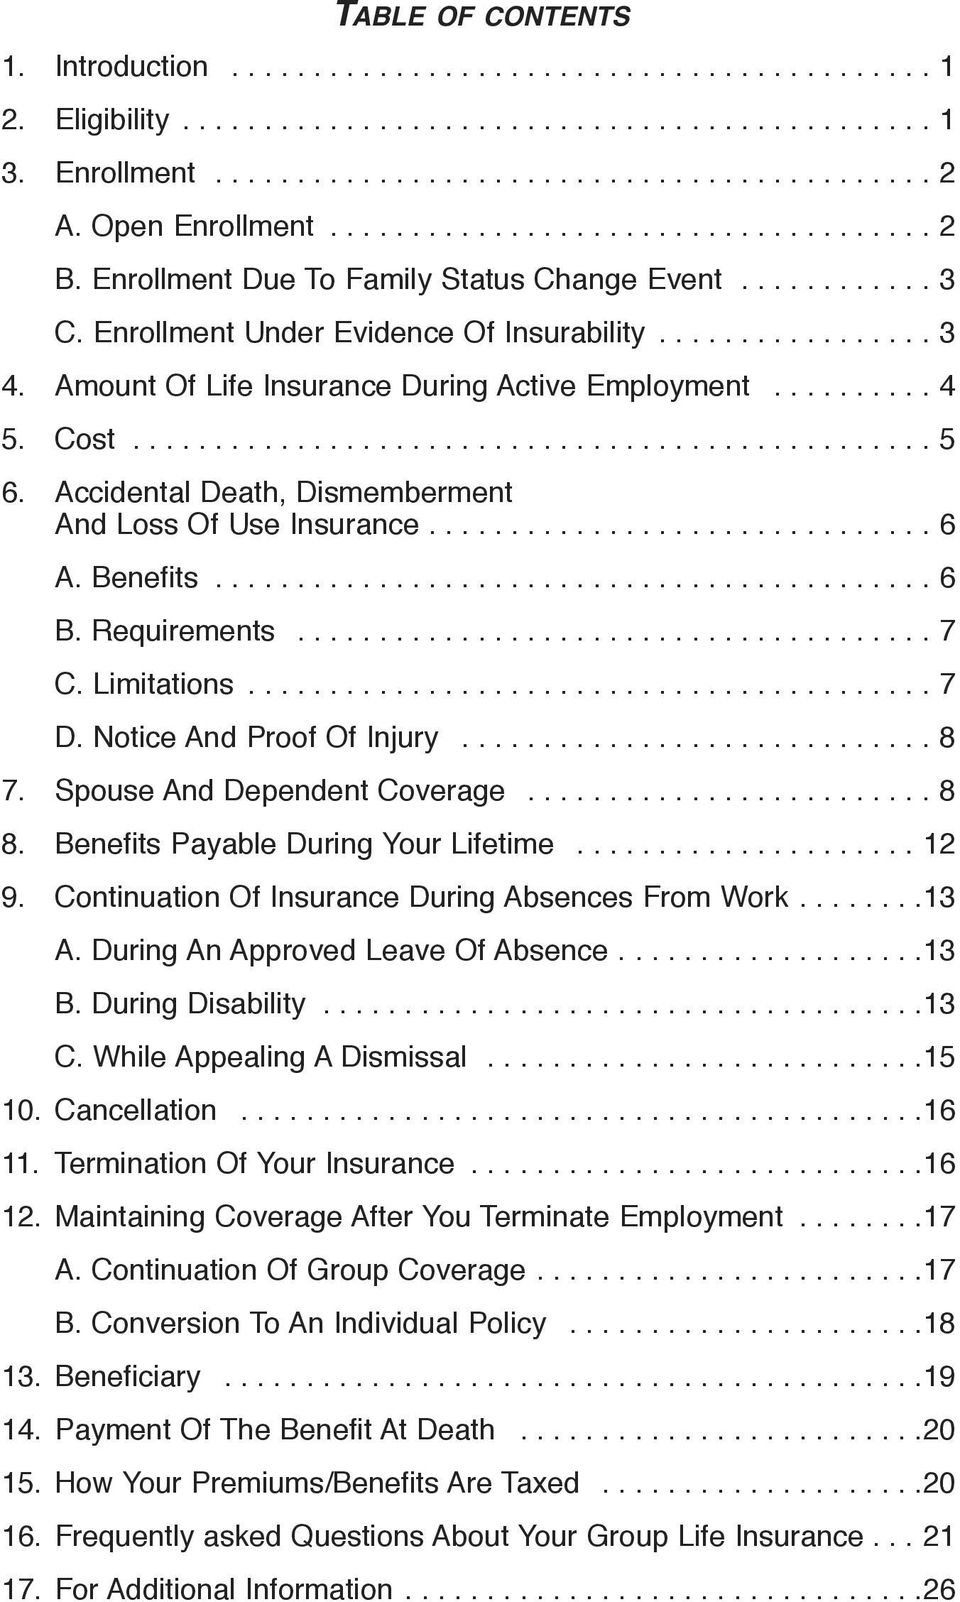 Amount Of Life Insurance During Active Employment.......... 4 5. Cost................................................. 5 6. Accidental Death, Dismemberment And Loss Of Use Insurance............................... 6 A.